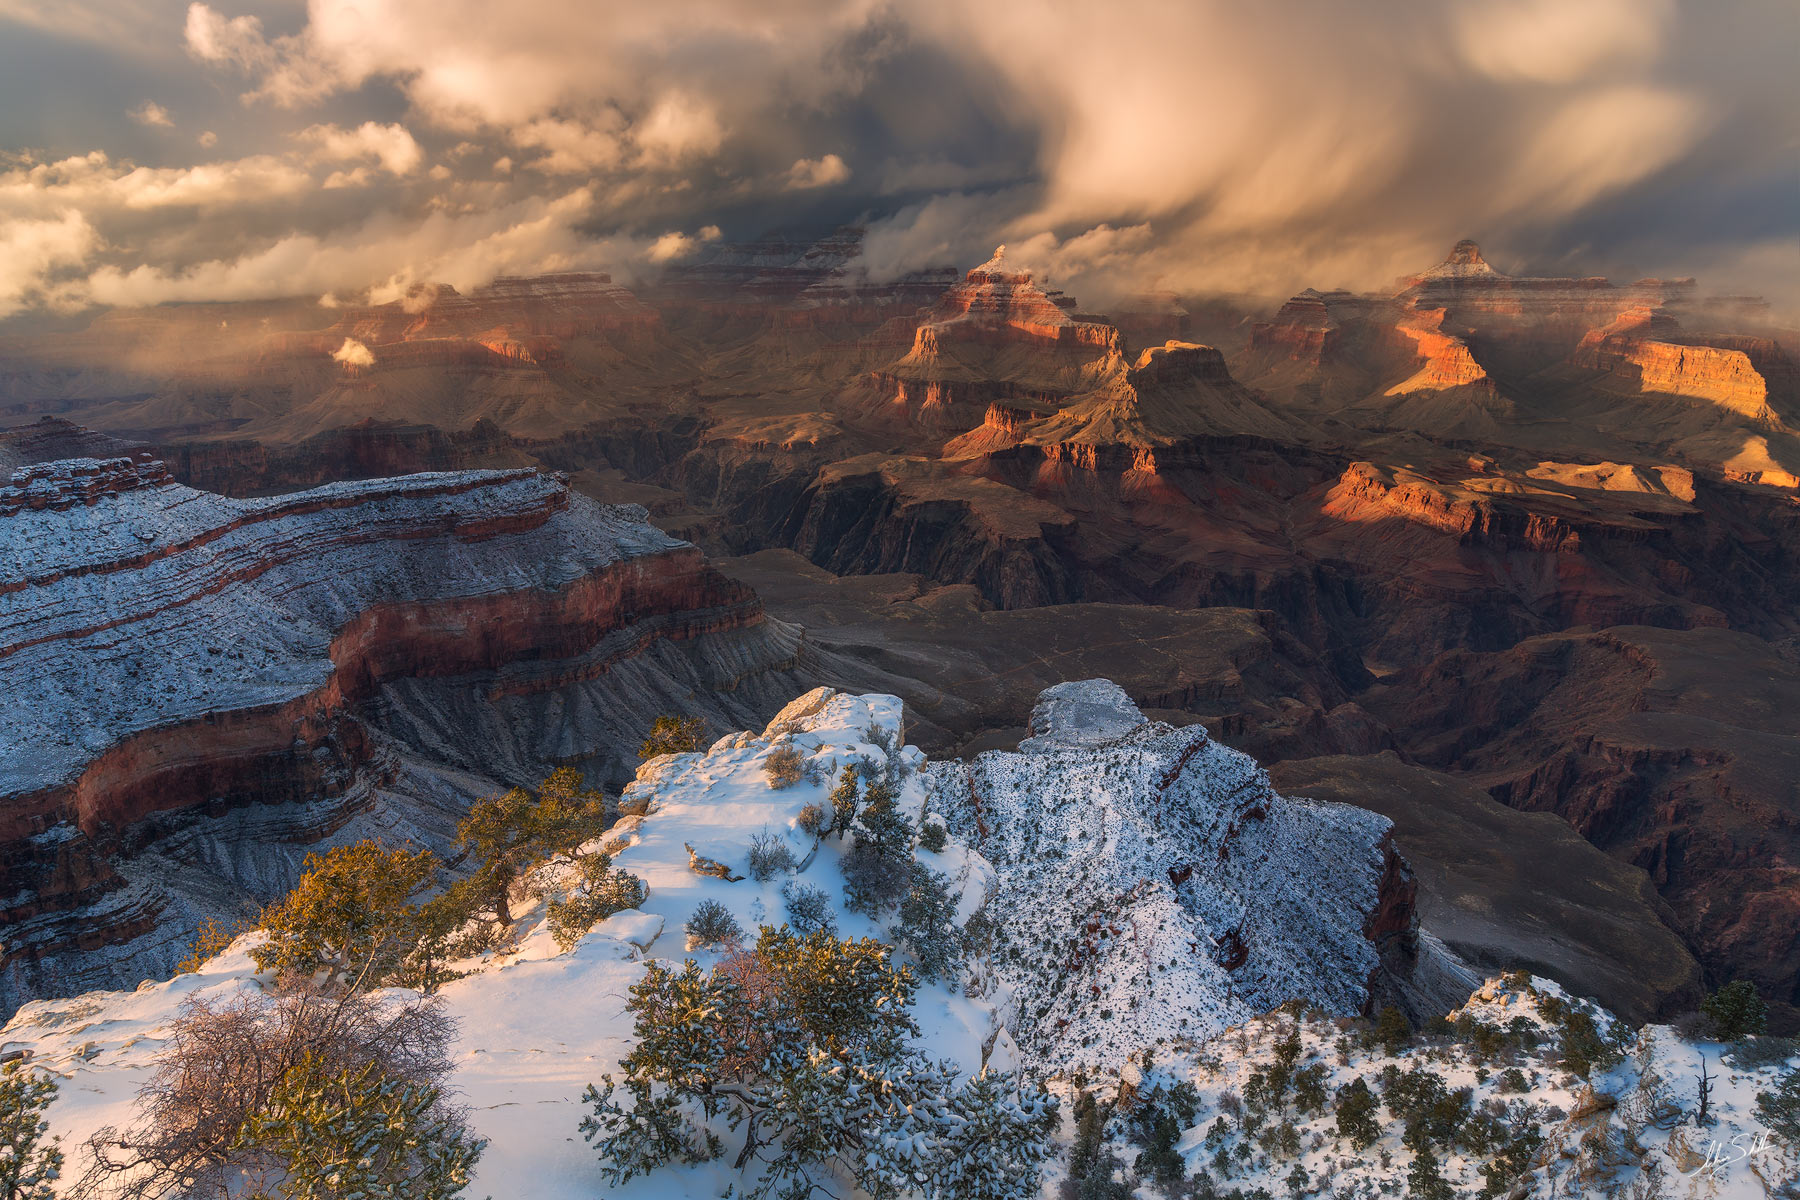 A break in the storm. From Yavapai Point on the South Rim of Grand Canyon National Park. Photo © Adam Schallau, All Rights Reserved...